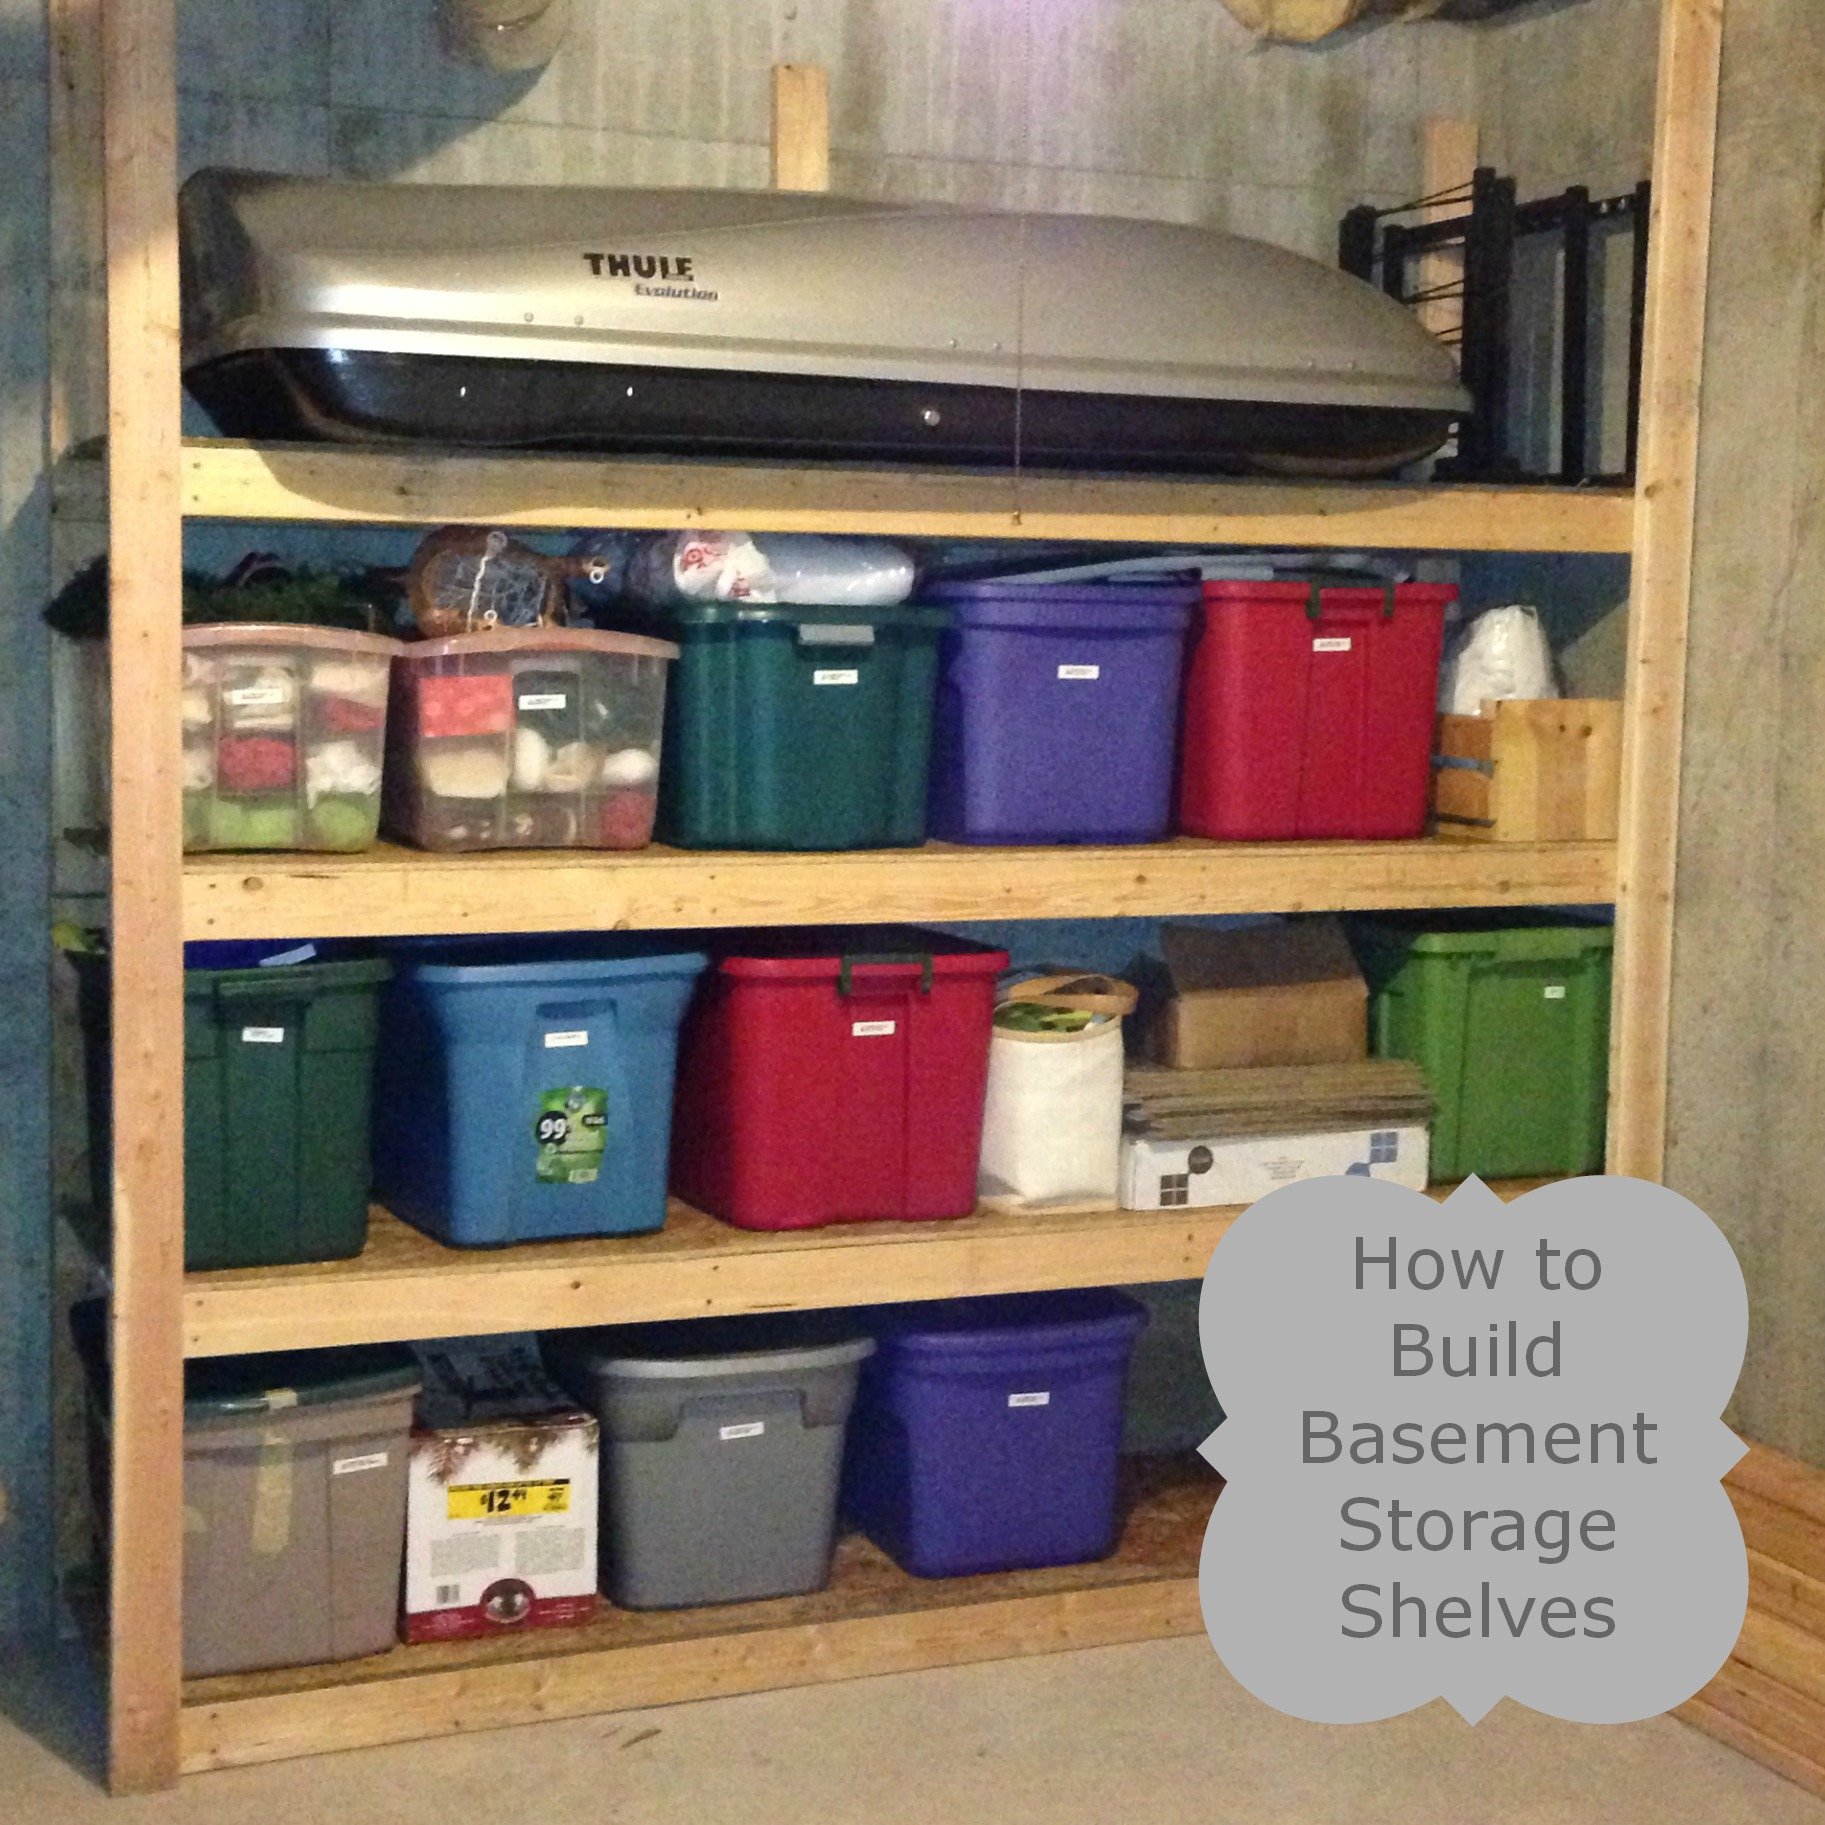 Diy Storage Shelves Basement Storage: Storage Shelf Plans Basement Plans DIY Free Download Pine